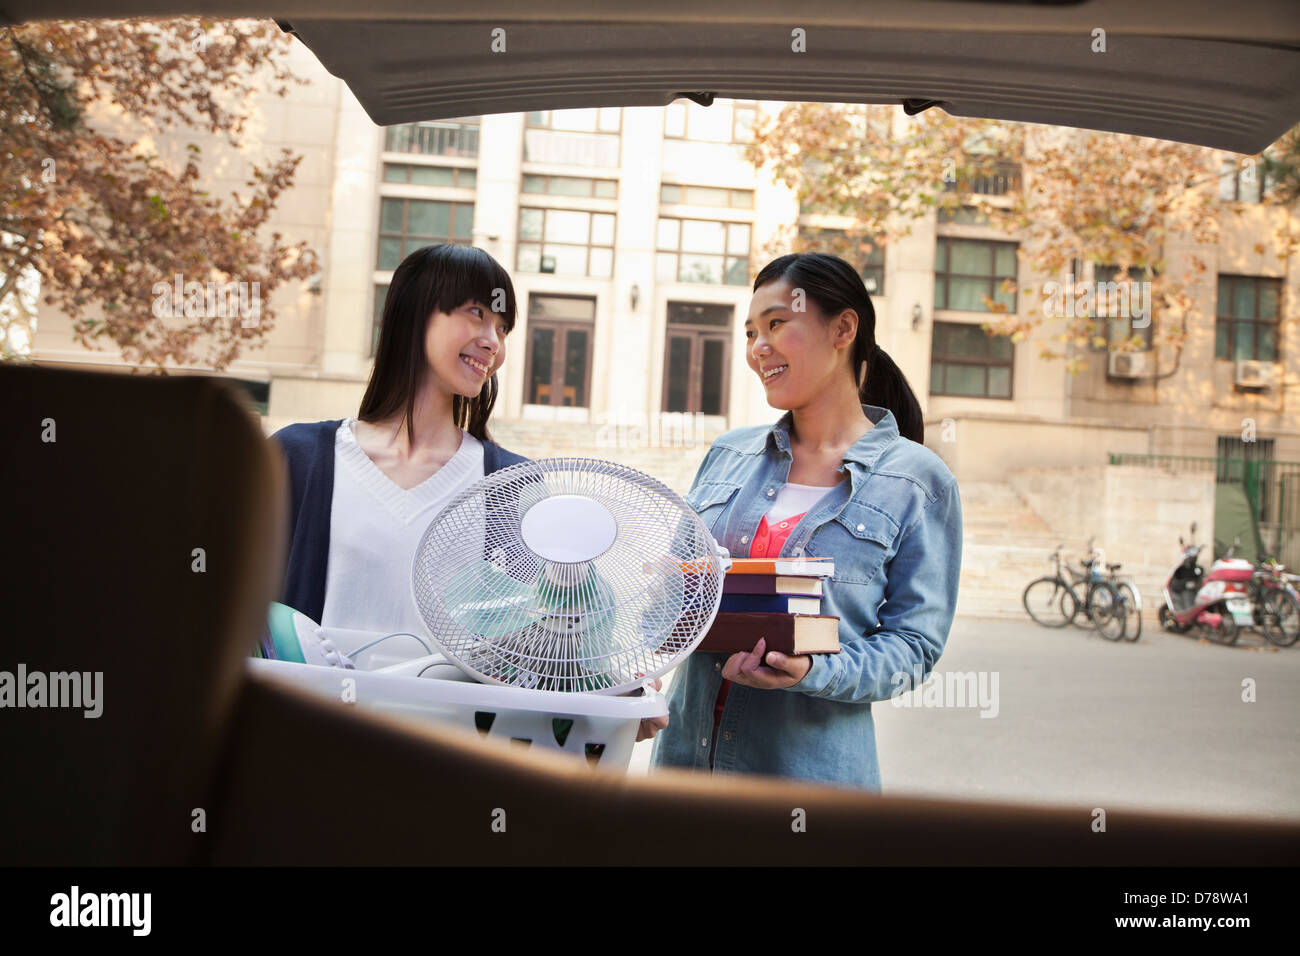 Sisters moving into dormitory at college - Stock Image